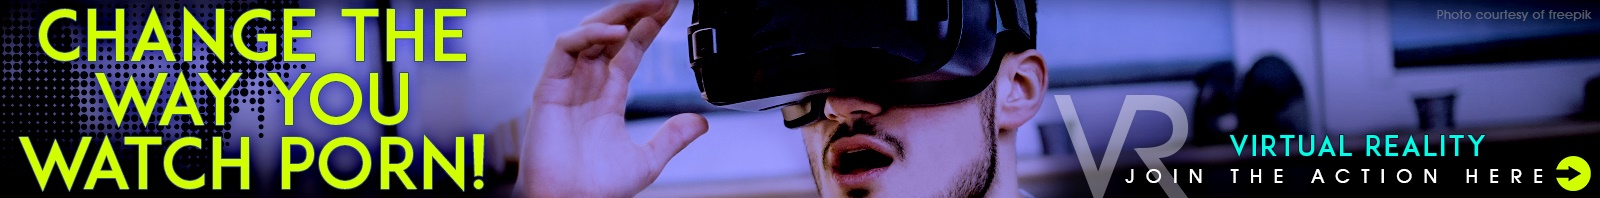 Browse virtual reality porn videos.